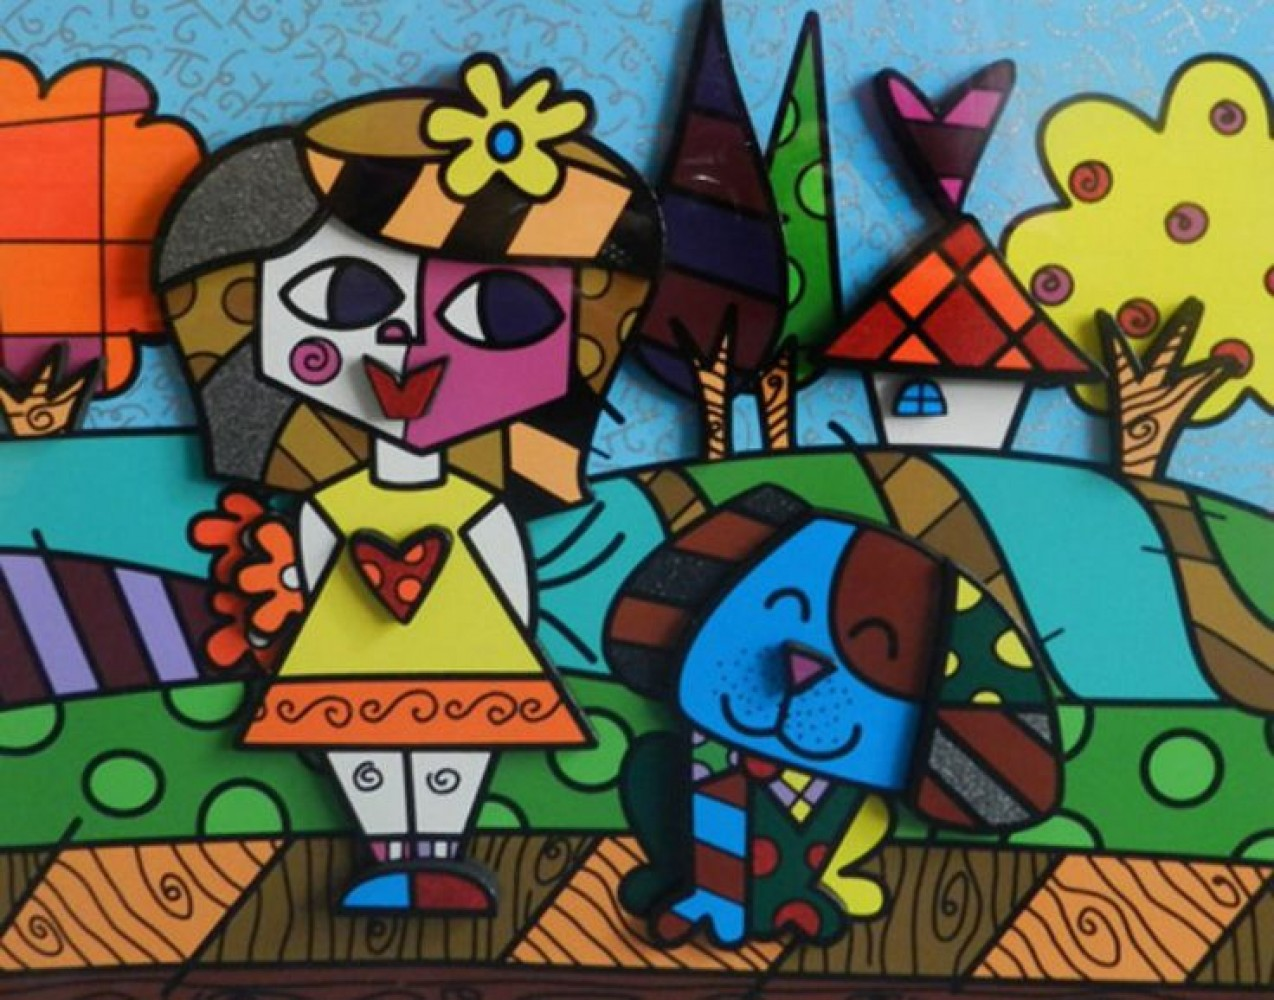 Fall 3-D 2008 by Romero Britto